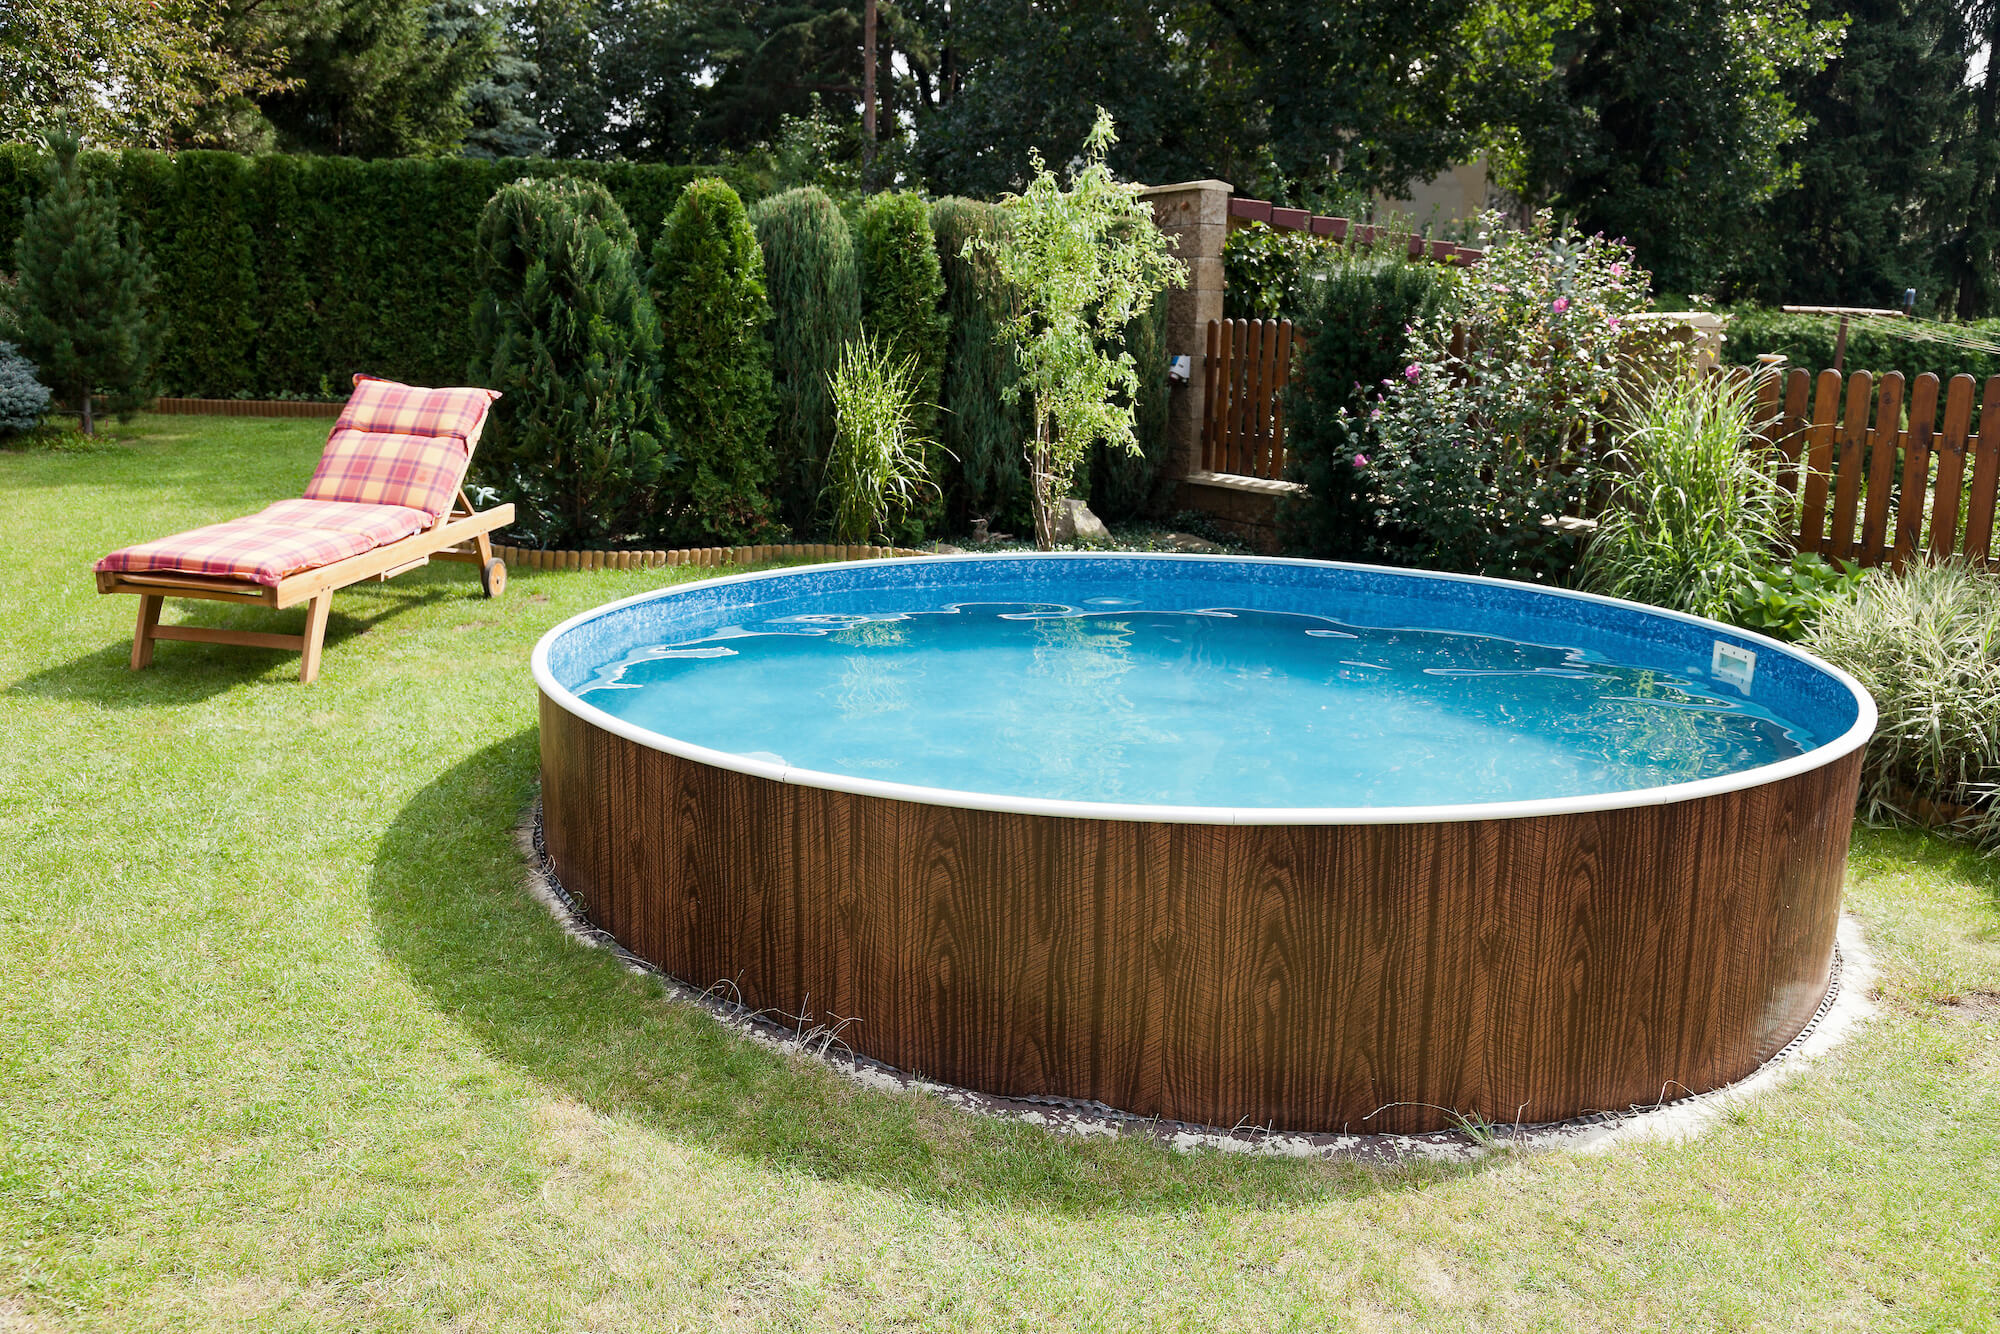 The Efficiency of an Above Ground Pool